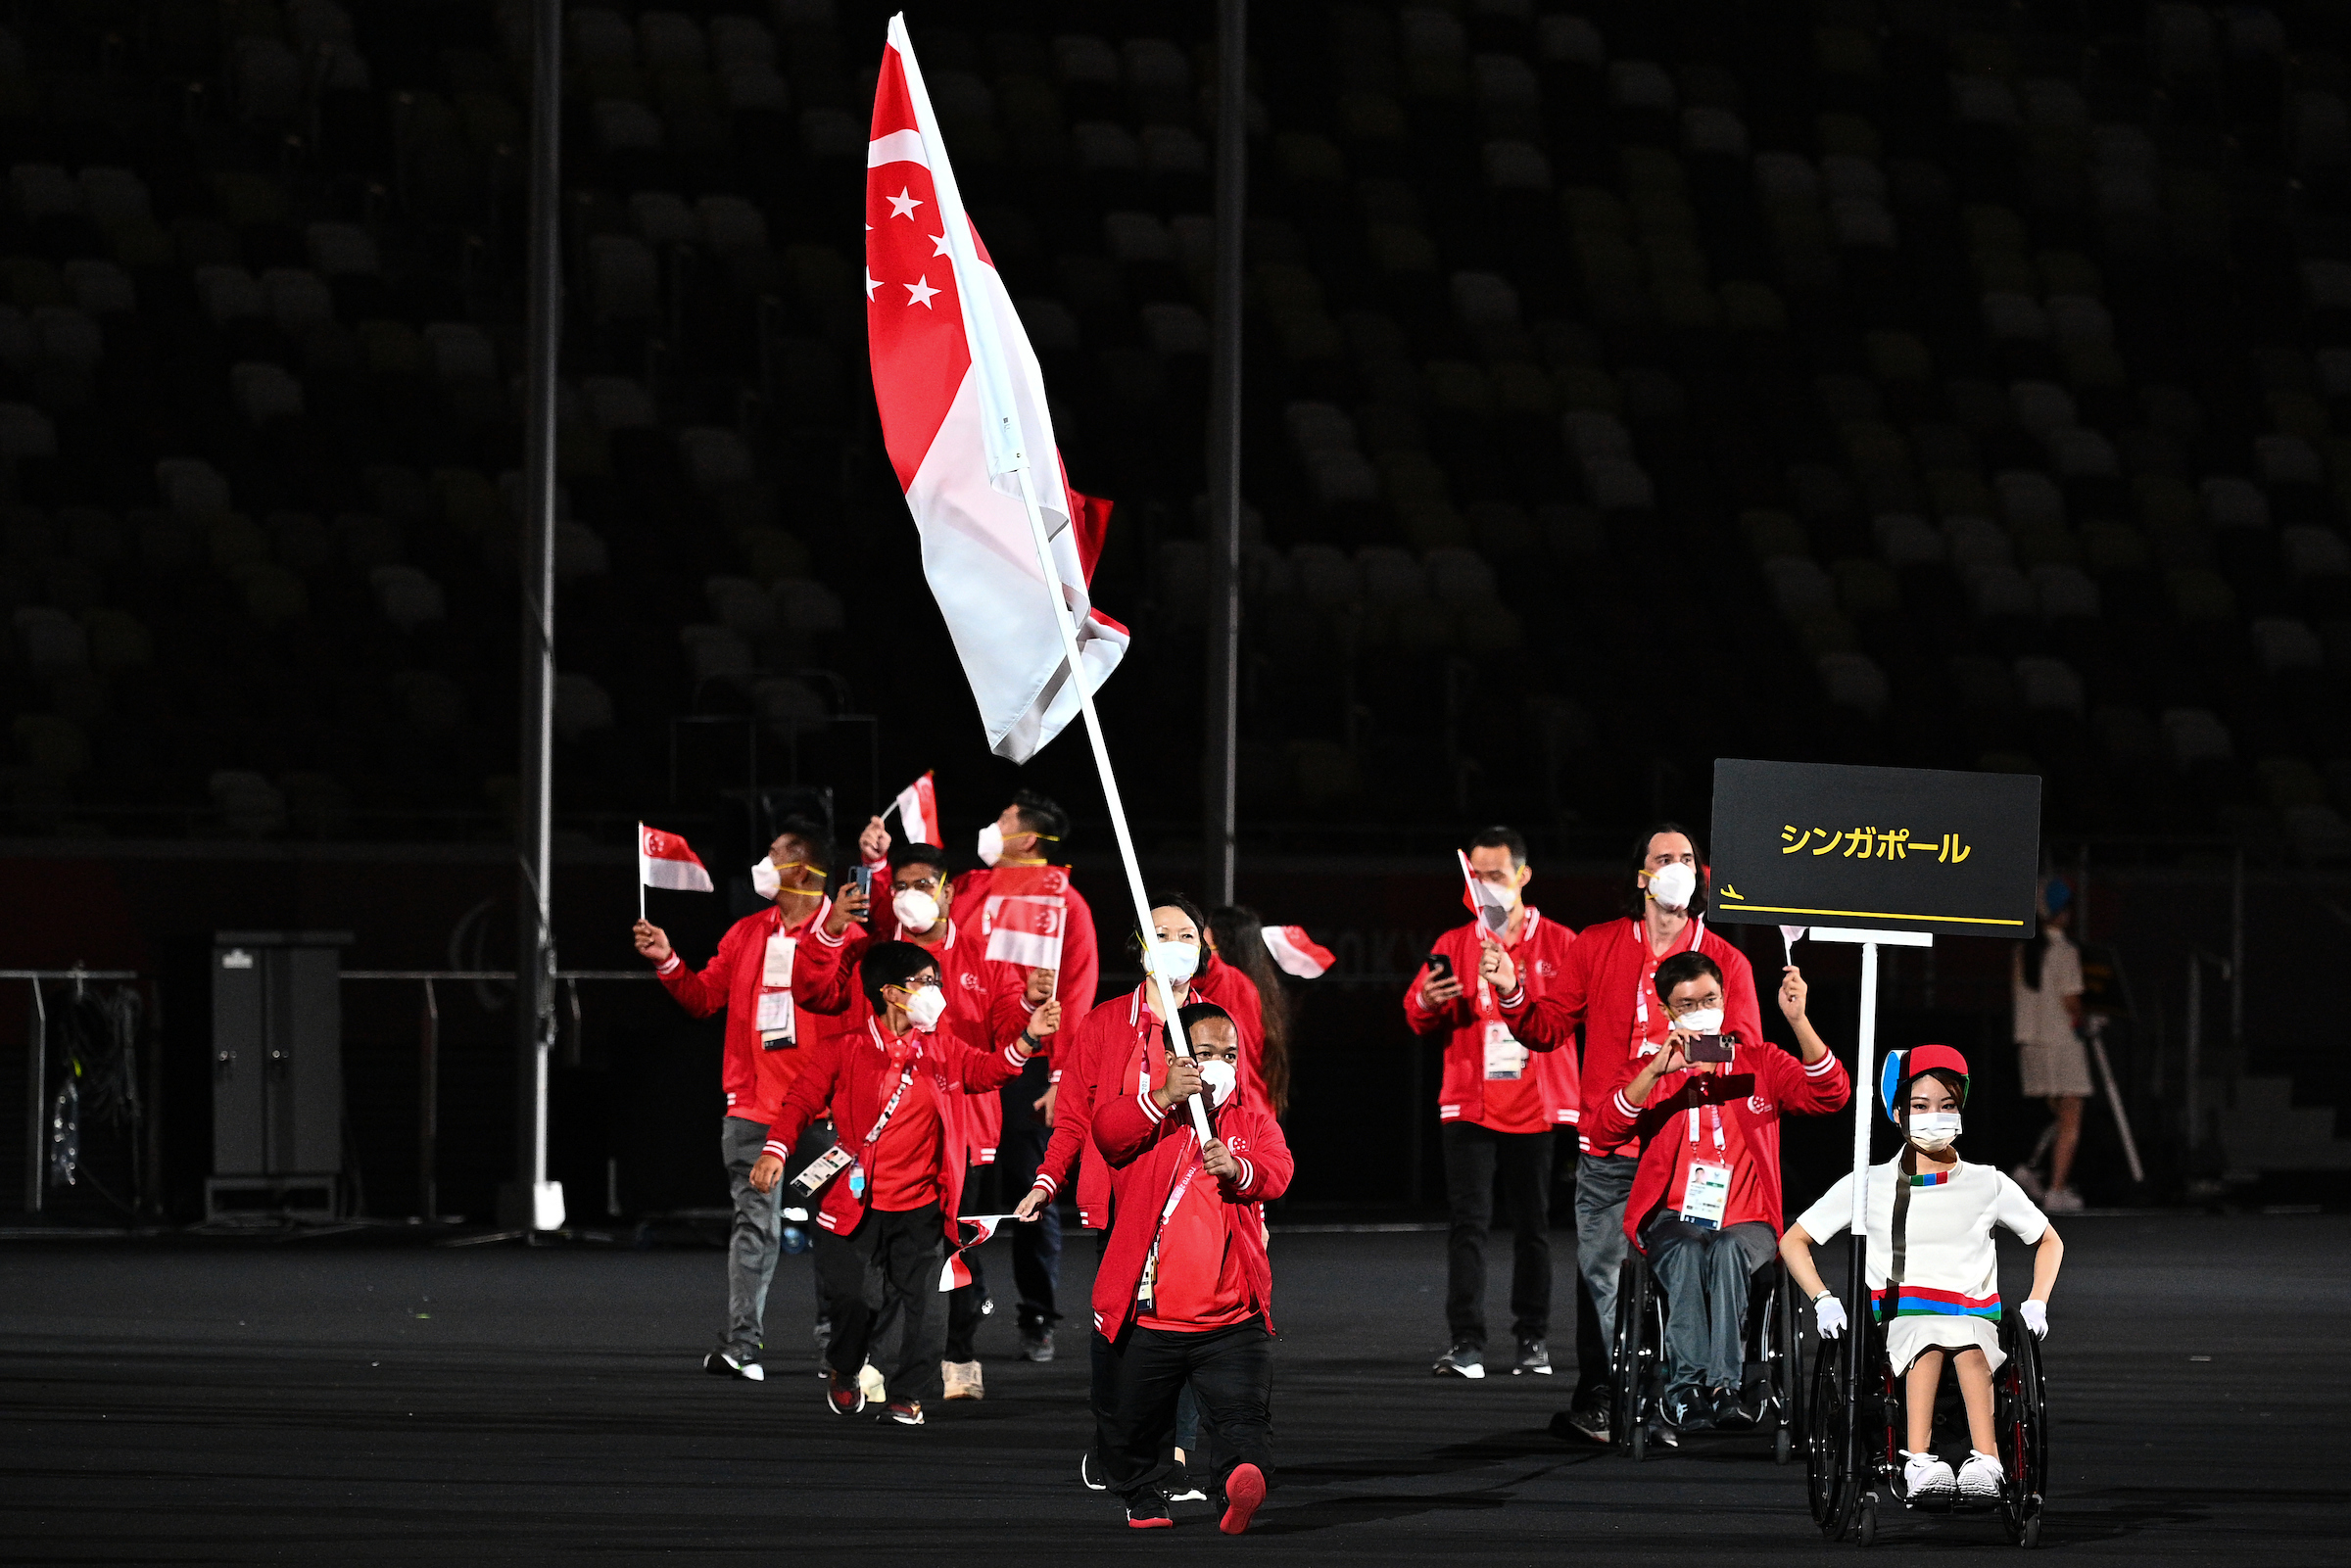 Singapore Flag flies high at Olympic Stadium, as Tokyo 2020 Paralympic Games declared open!